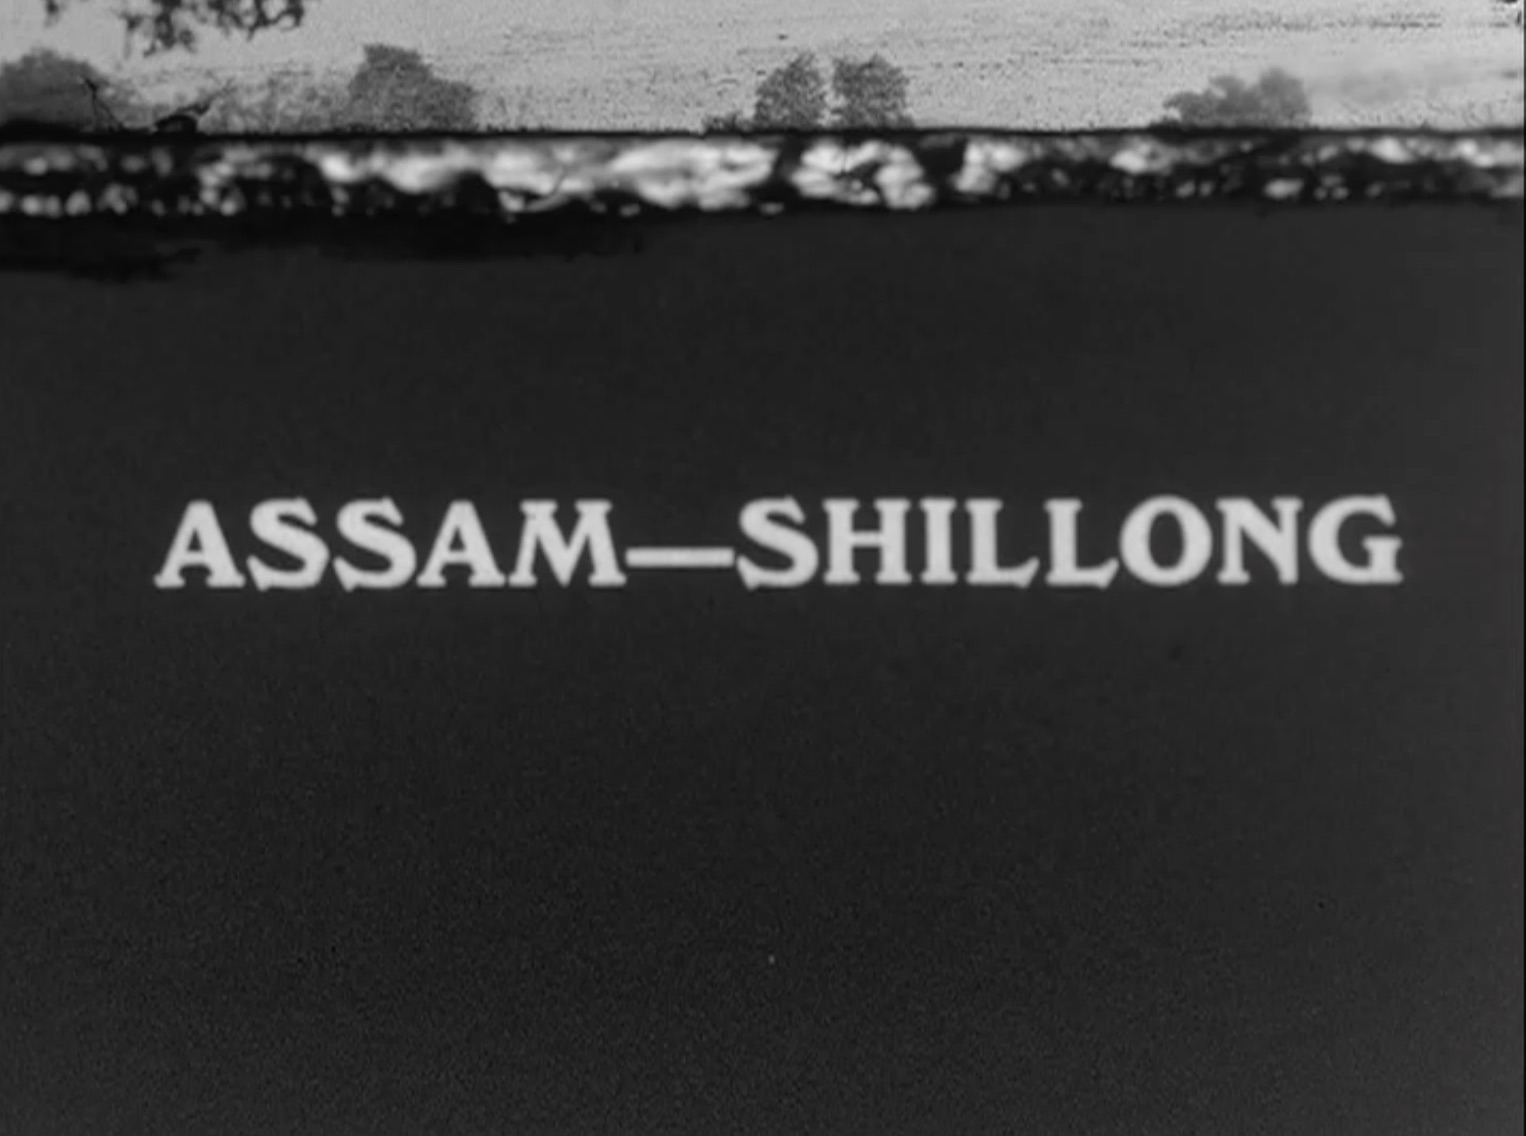 1936 film on Shillong